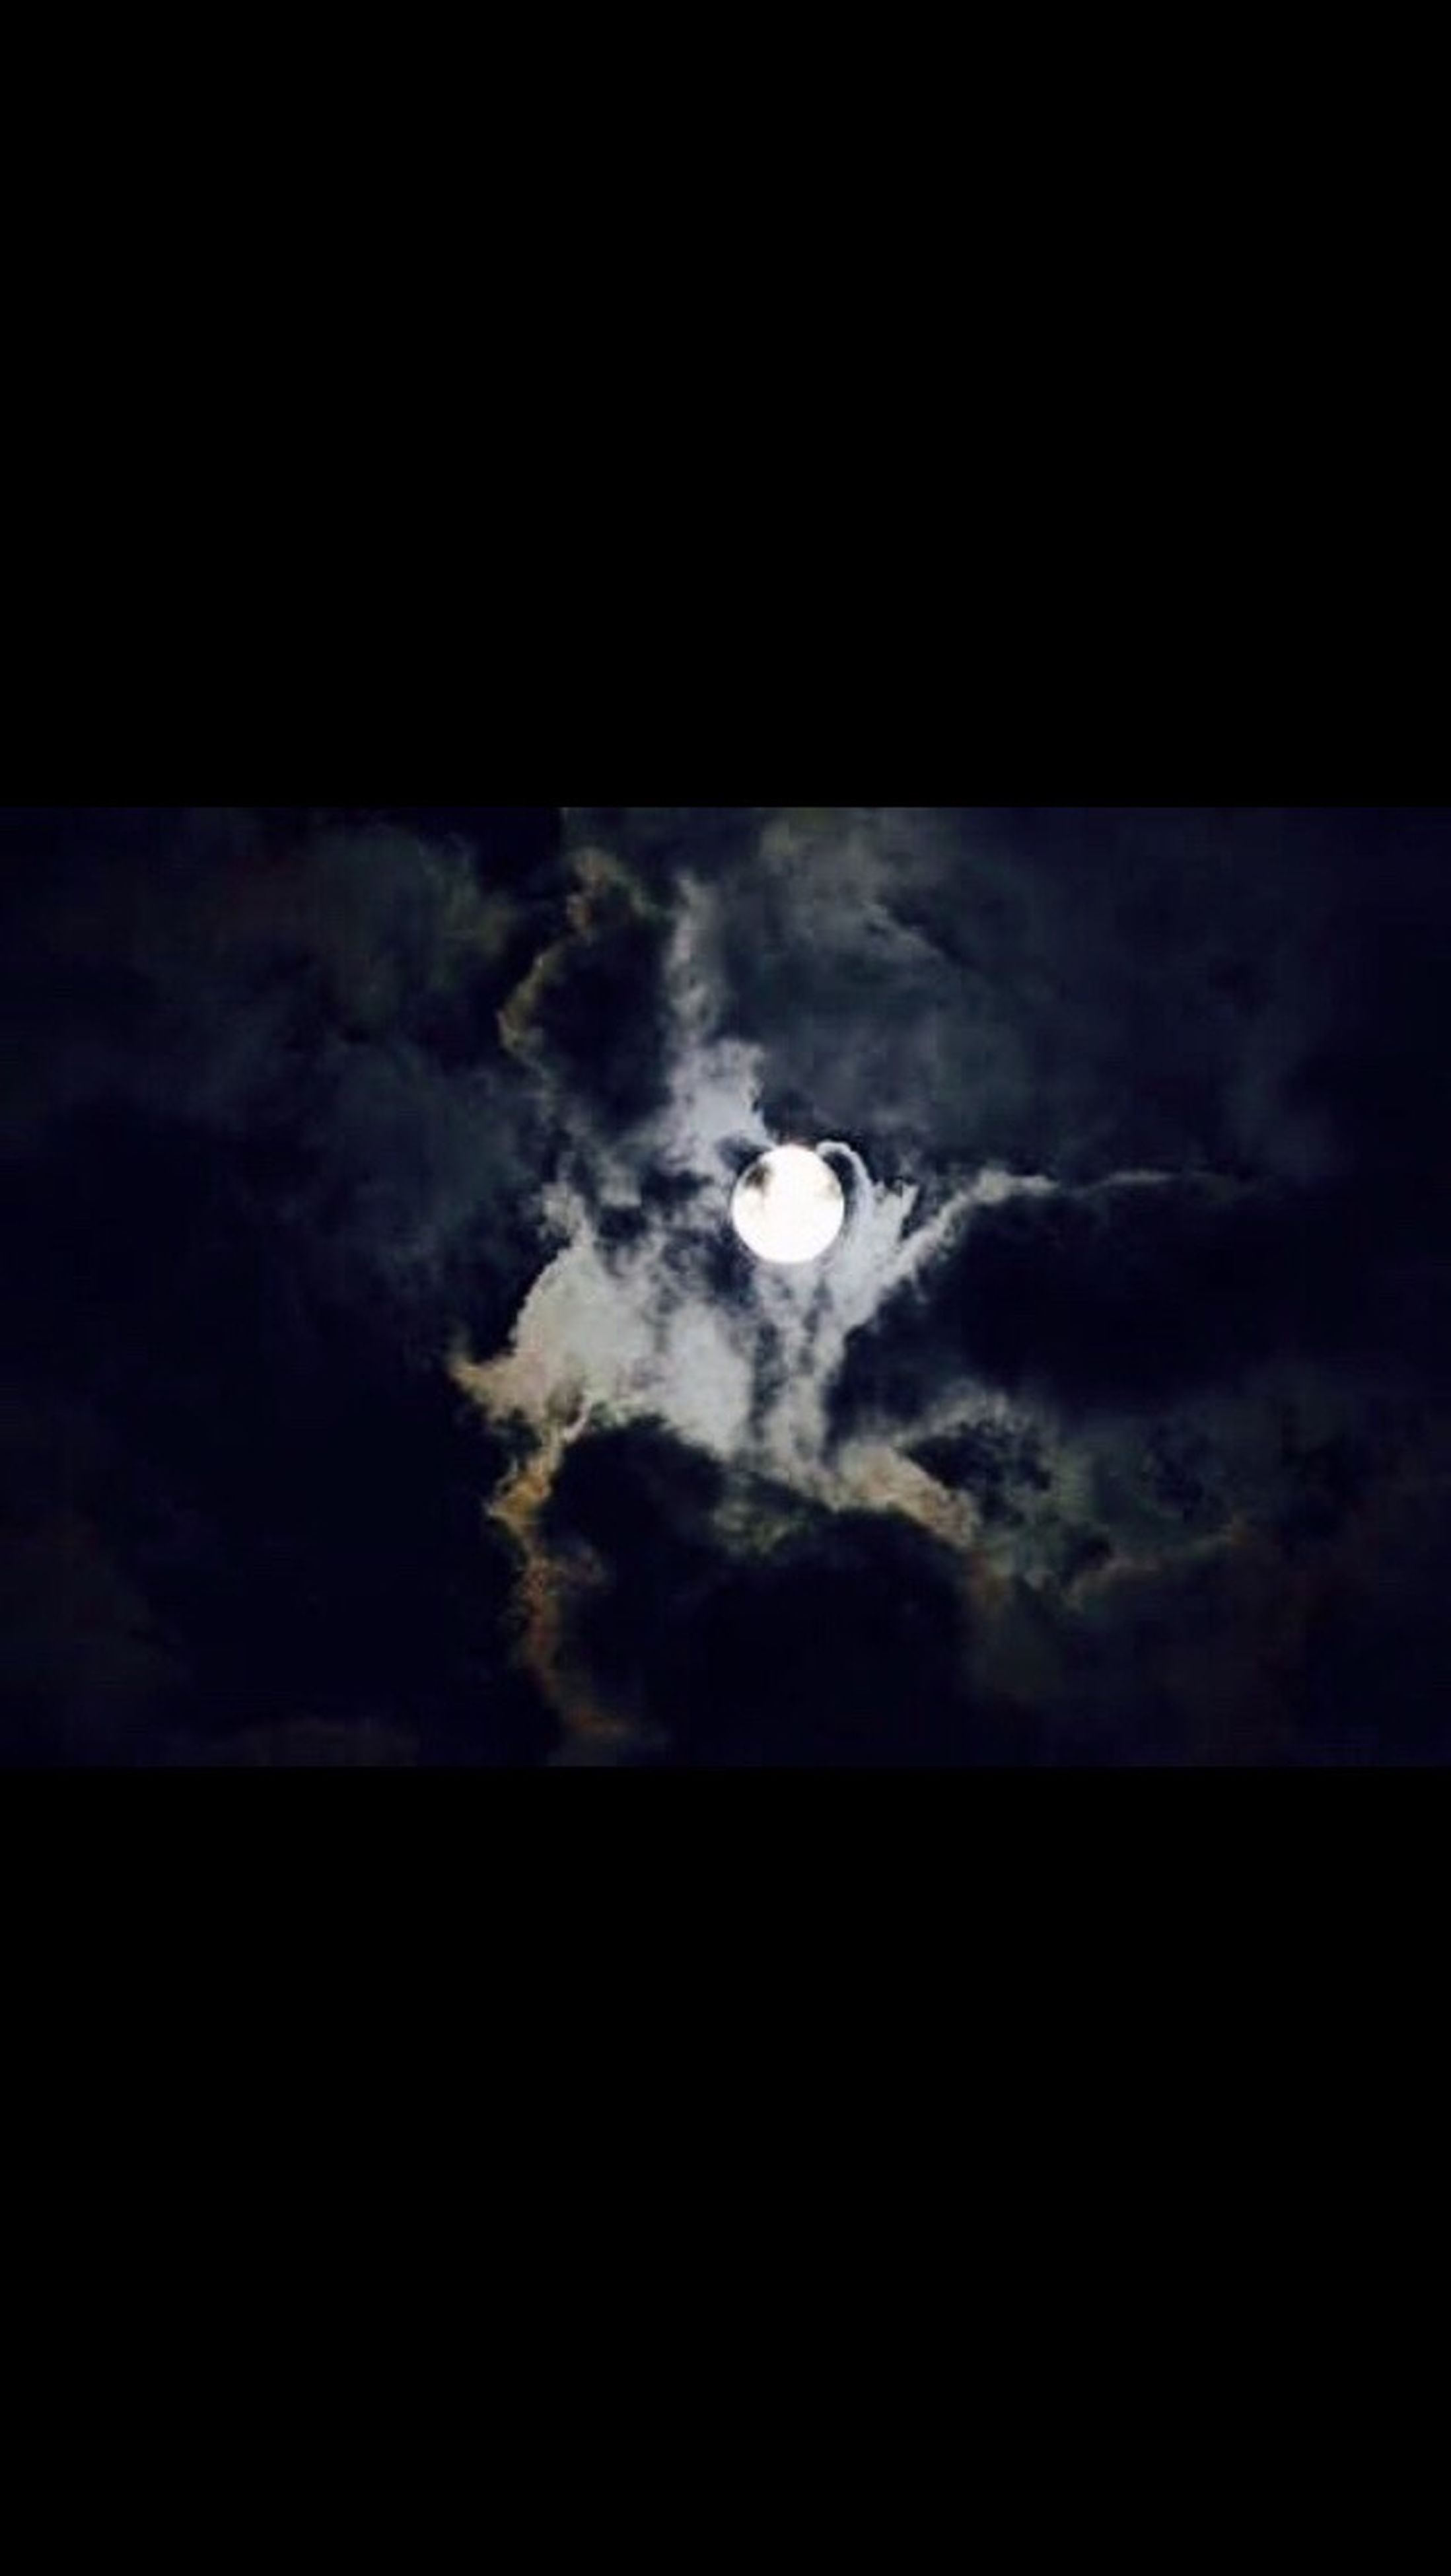 dark, sky, majestic, cloud - sky, tranquil scene, tranquility, night, scenics, moon, glowing, beauty in nature, nature, cloudscape, outdoors, exploration, storm cloud, cloudy, moonlight, space exploration, dramatic sky, atmospheric mood, ominous, no people